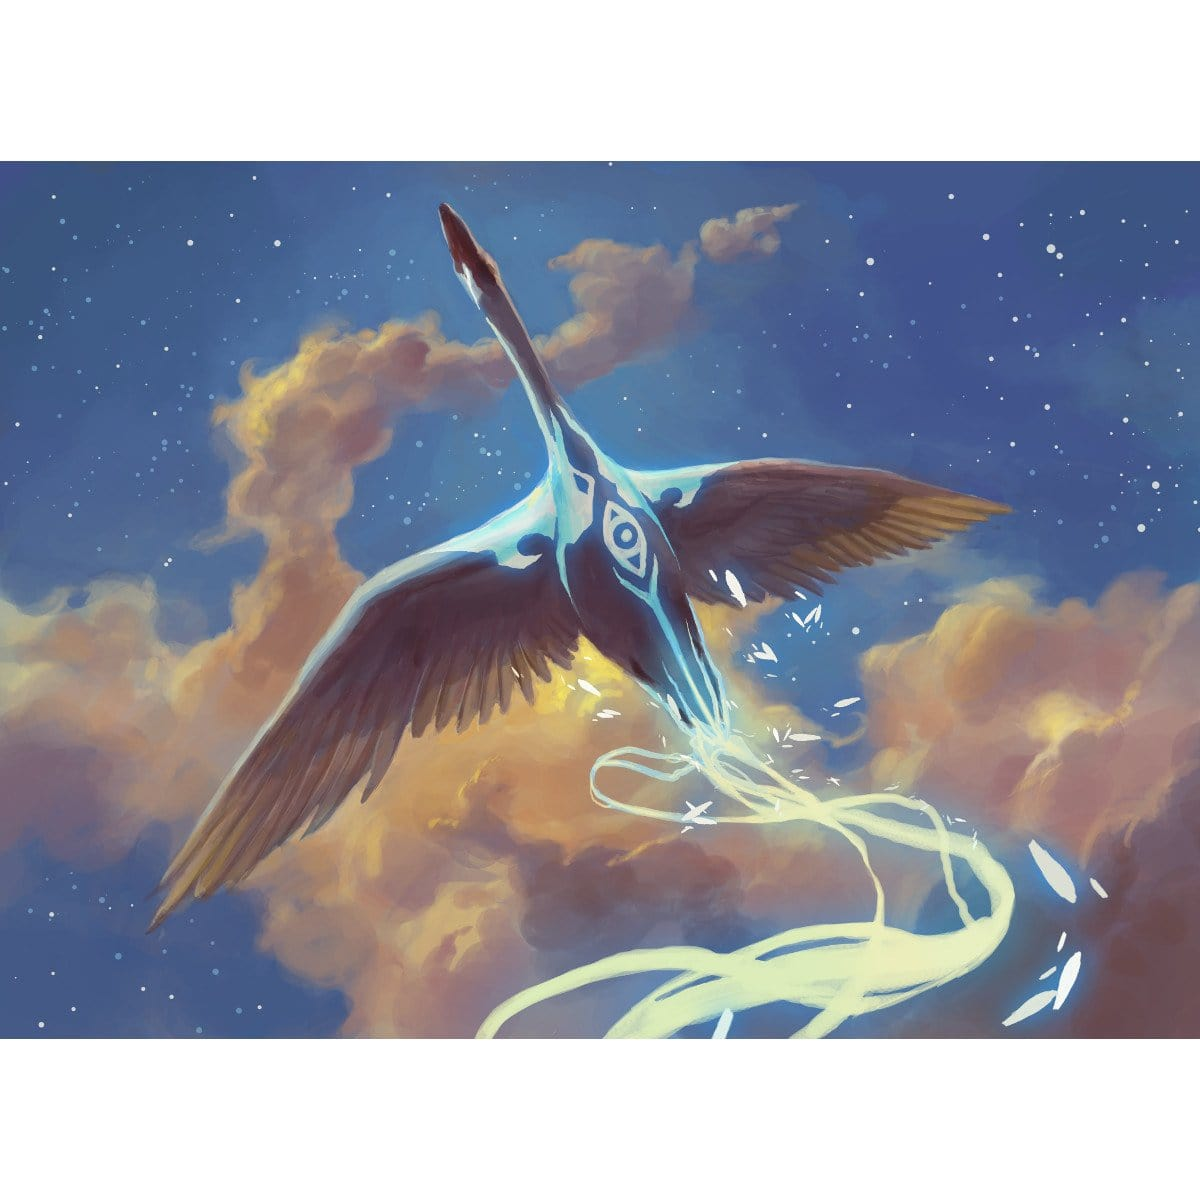 Swan Song Print - Print - Original Magic Art - Accessories for Magic the Gathering and other card games